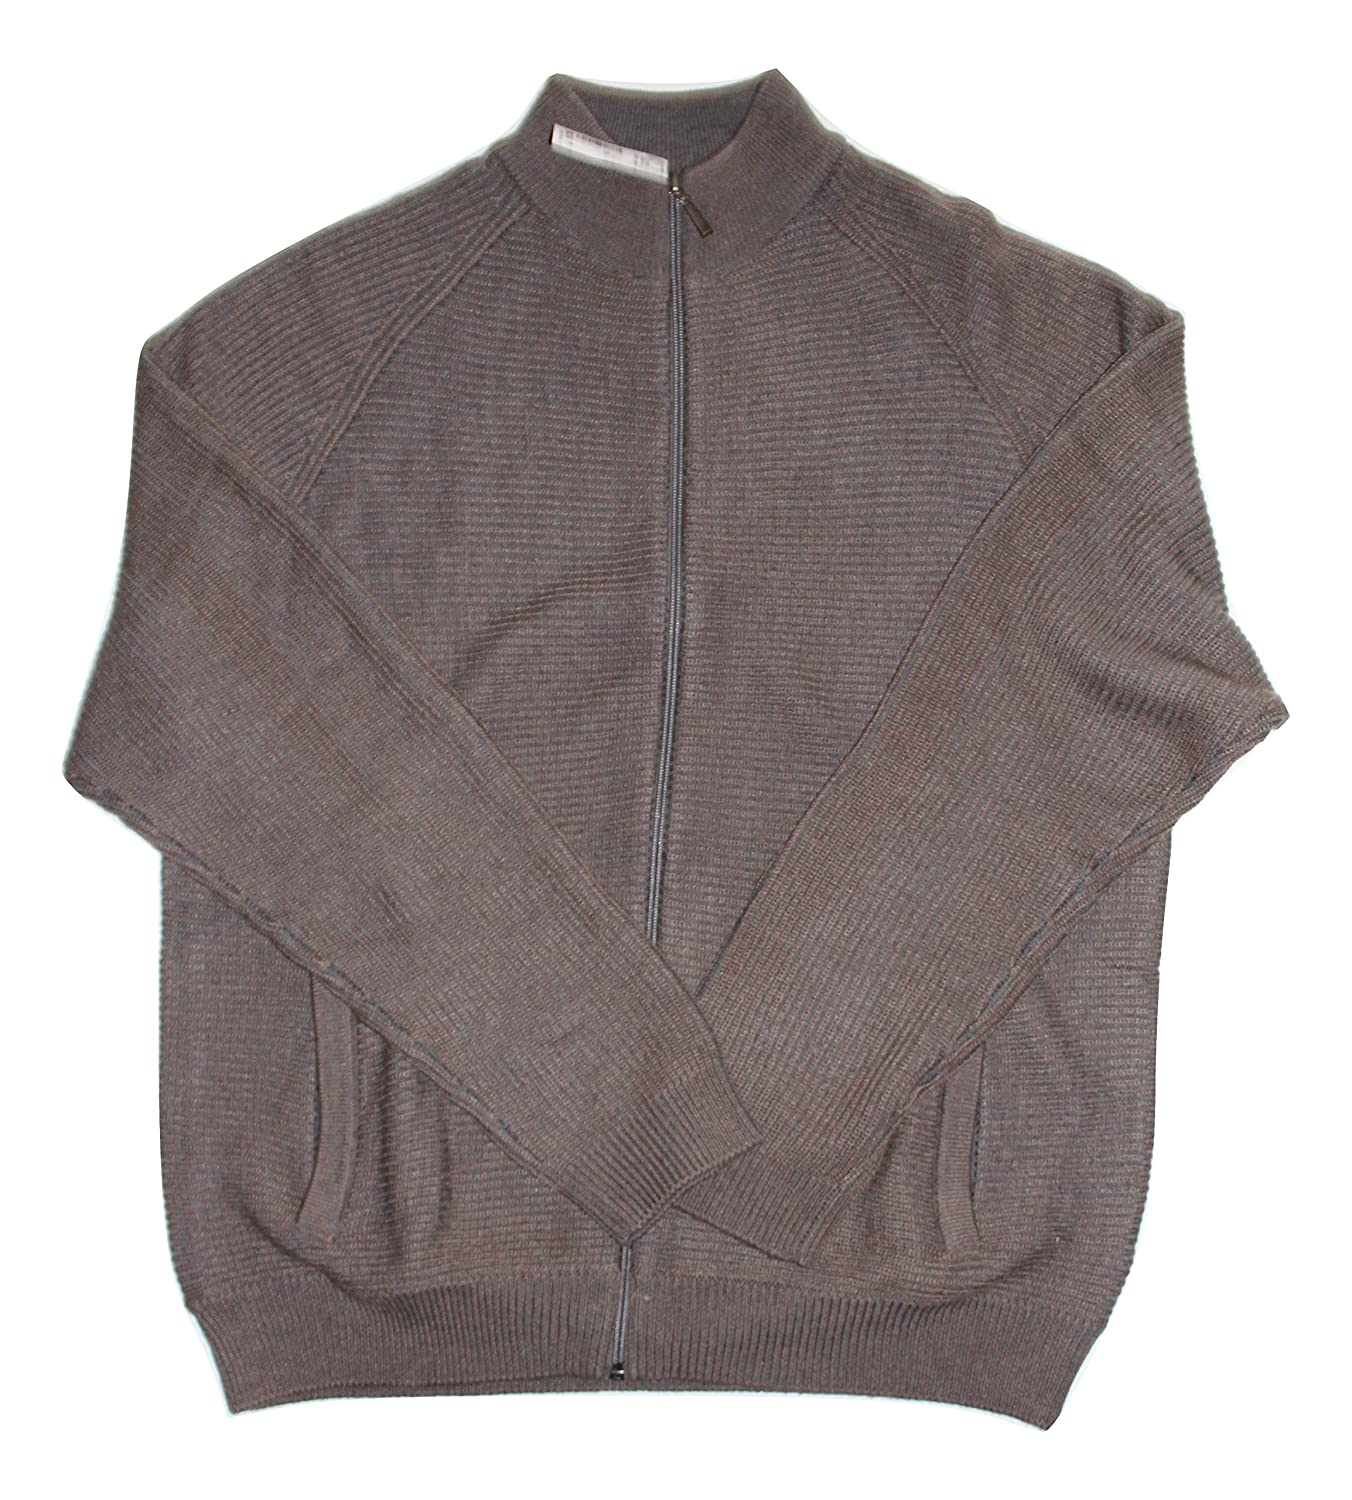 e1bc79e56 Amazon.com: Joseph Abboud Taupe Full-Zip Sweater, Brown: Clothing